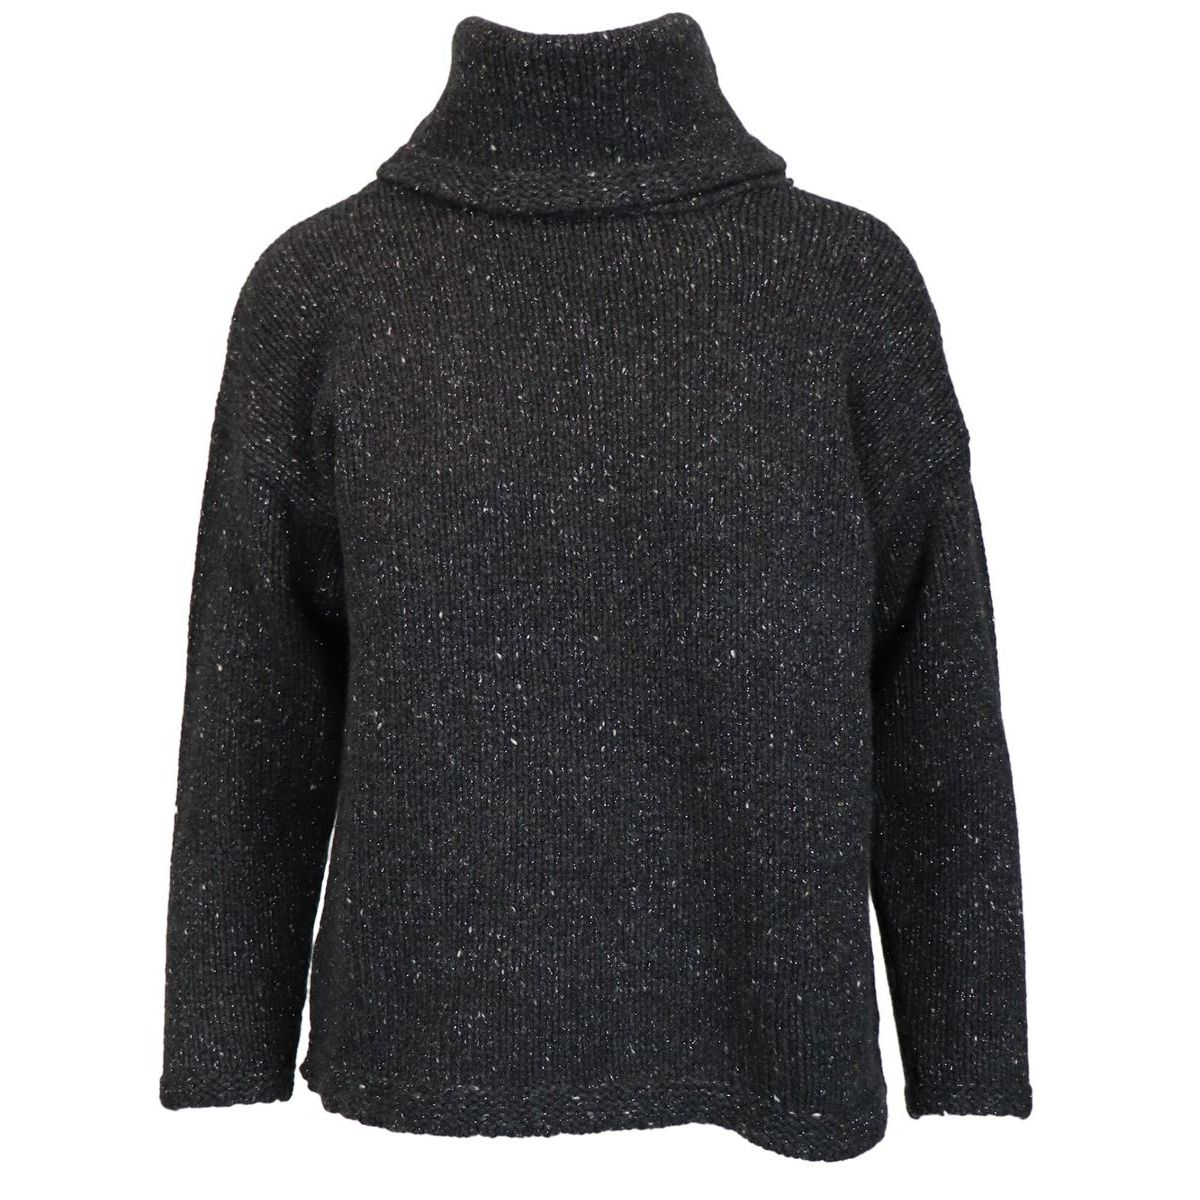 Turtleneck sweater in cashmere with three-quarter sleeves Anthracite Gran Sasso